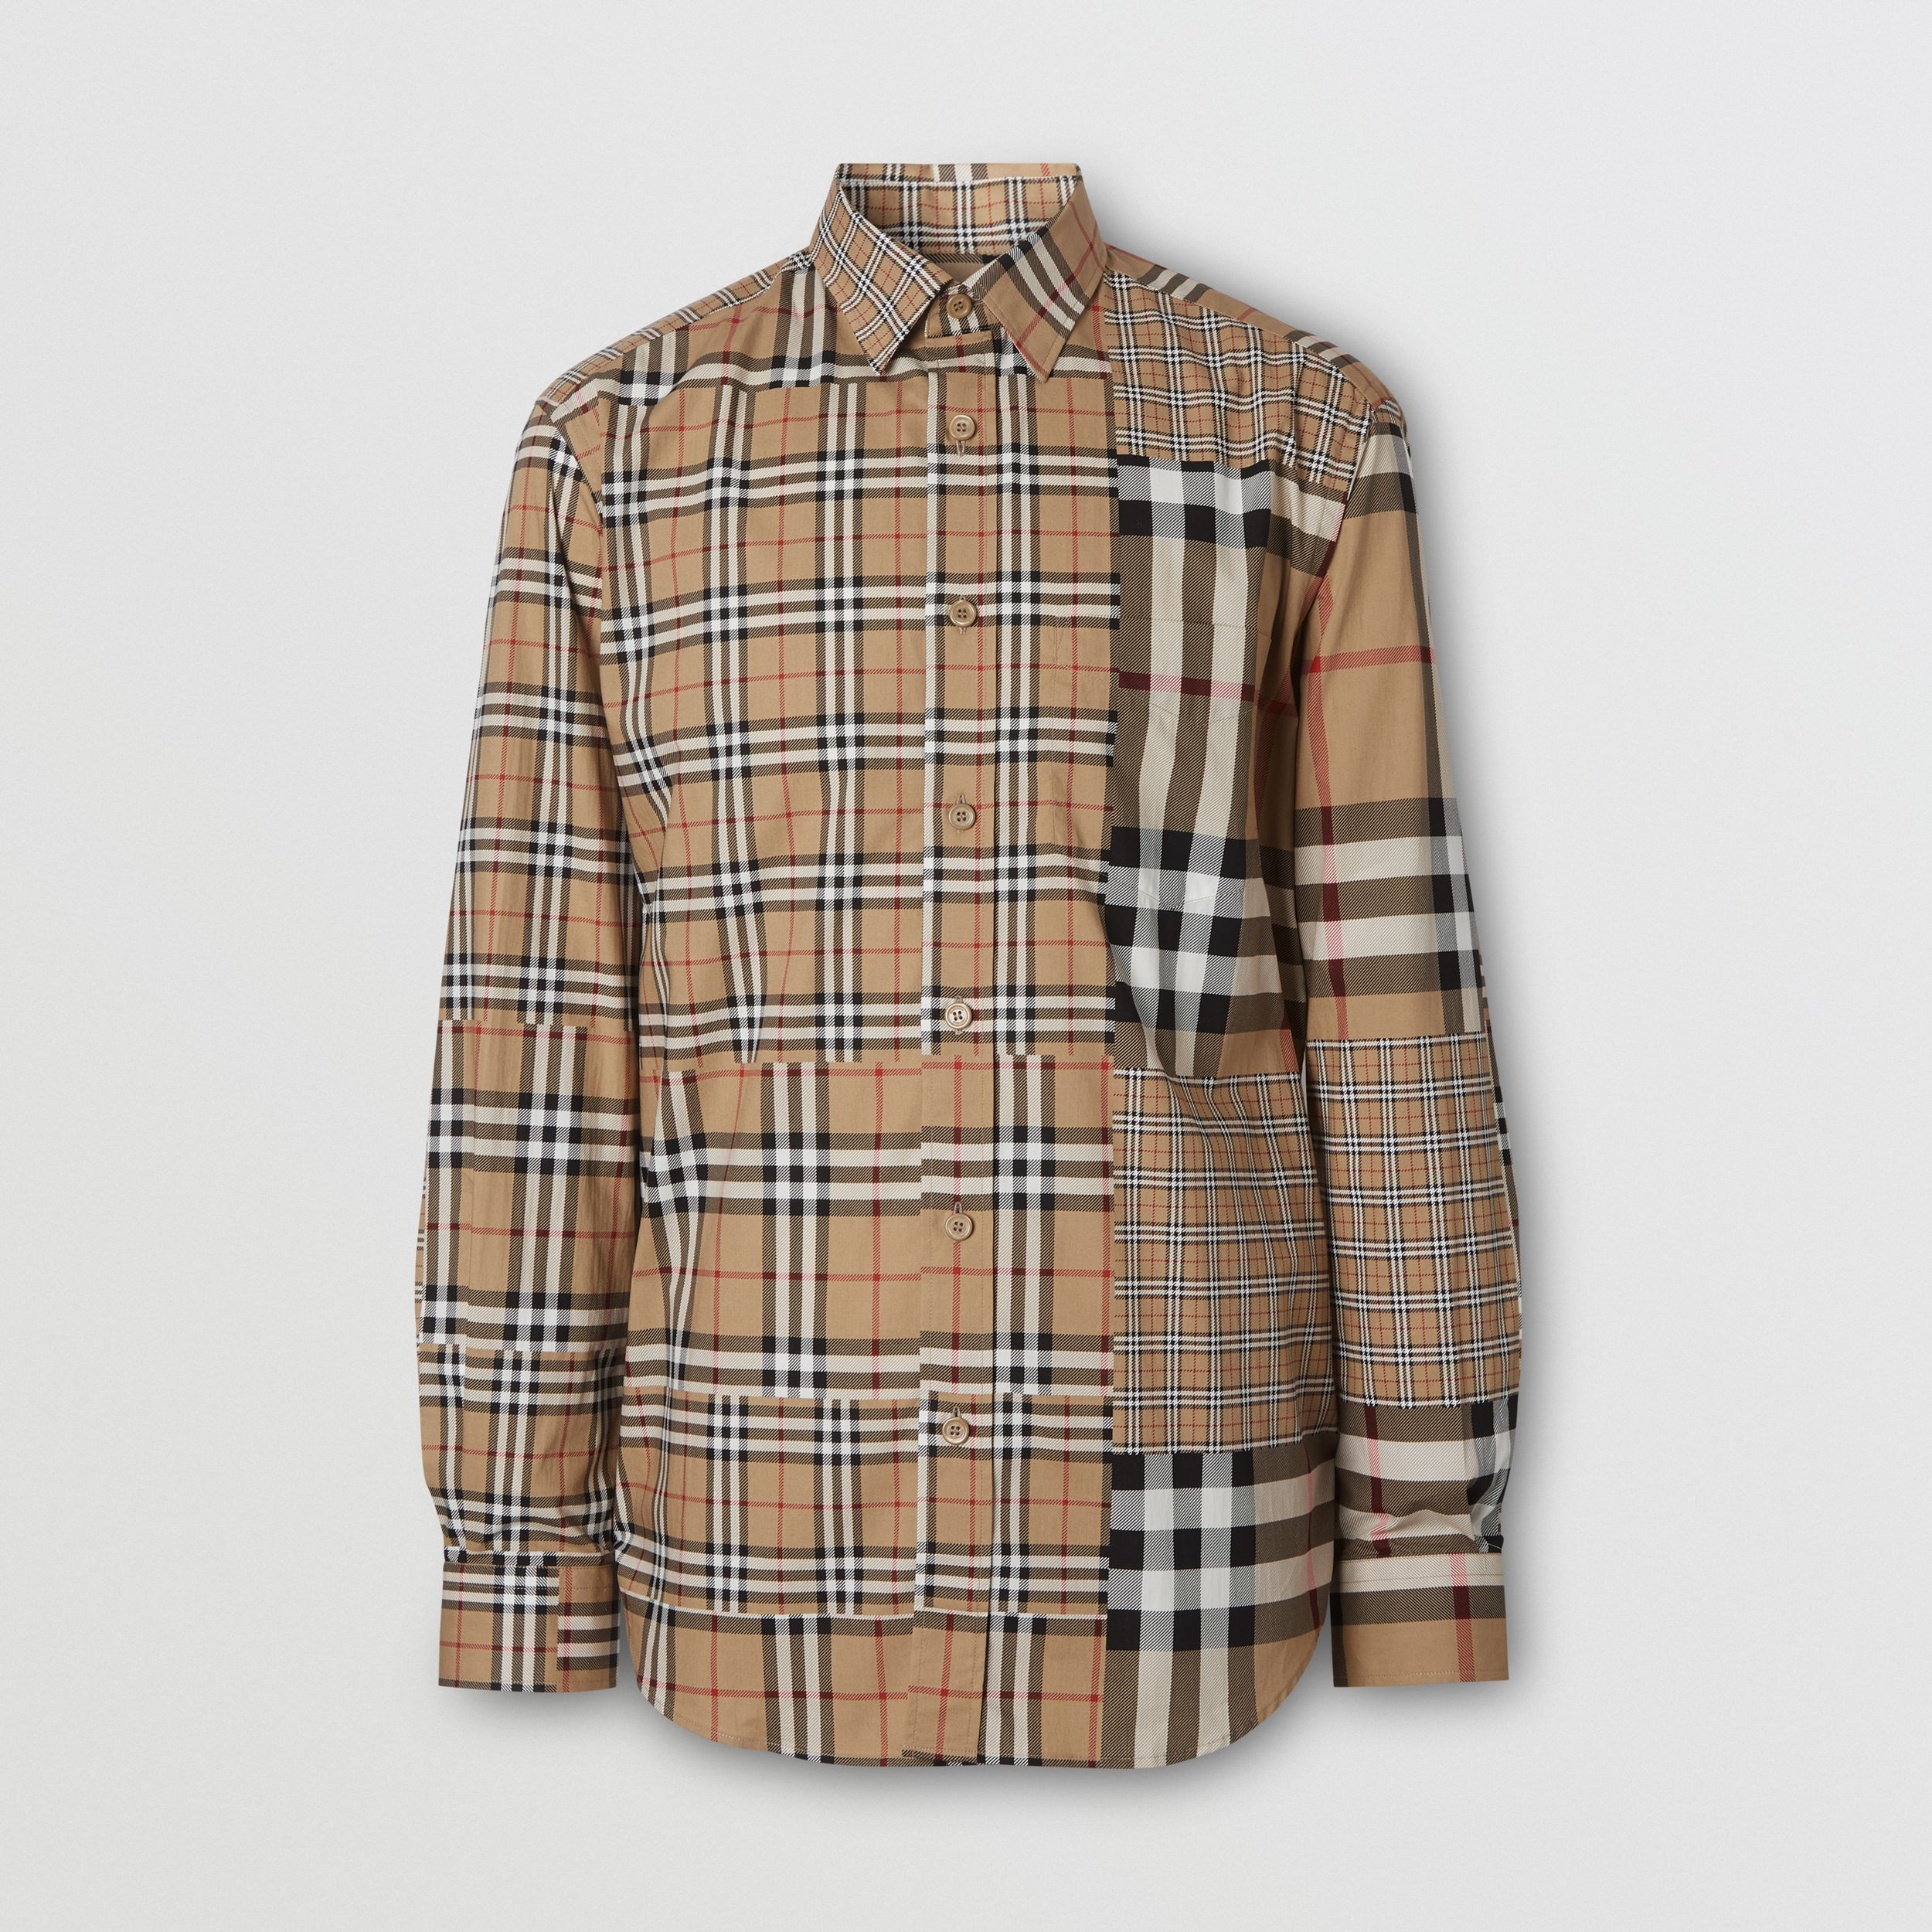 Classic Fit Patchwork Check Cotton Shirt in Archive Beige | Burberry United States - 4